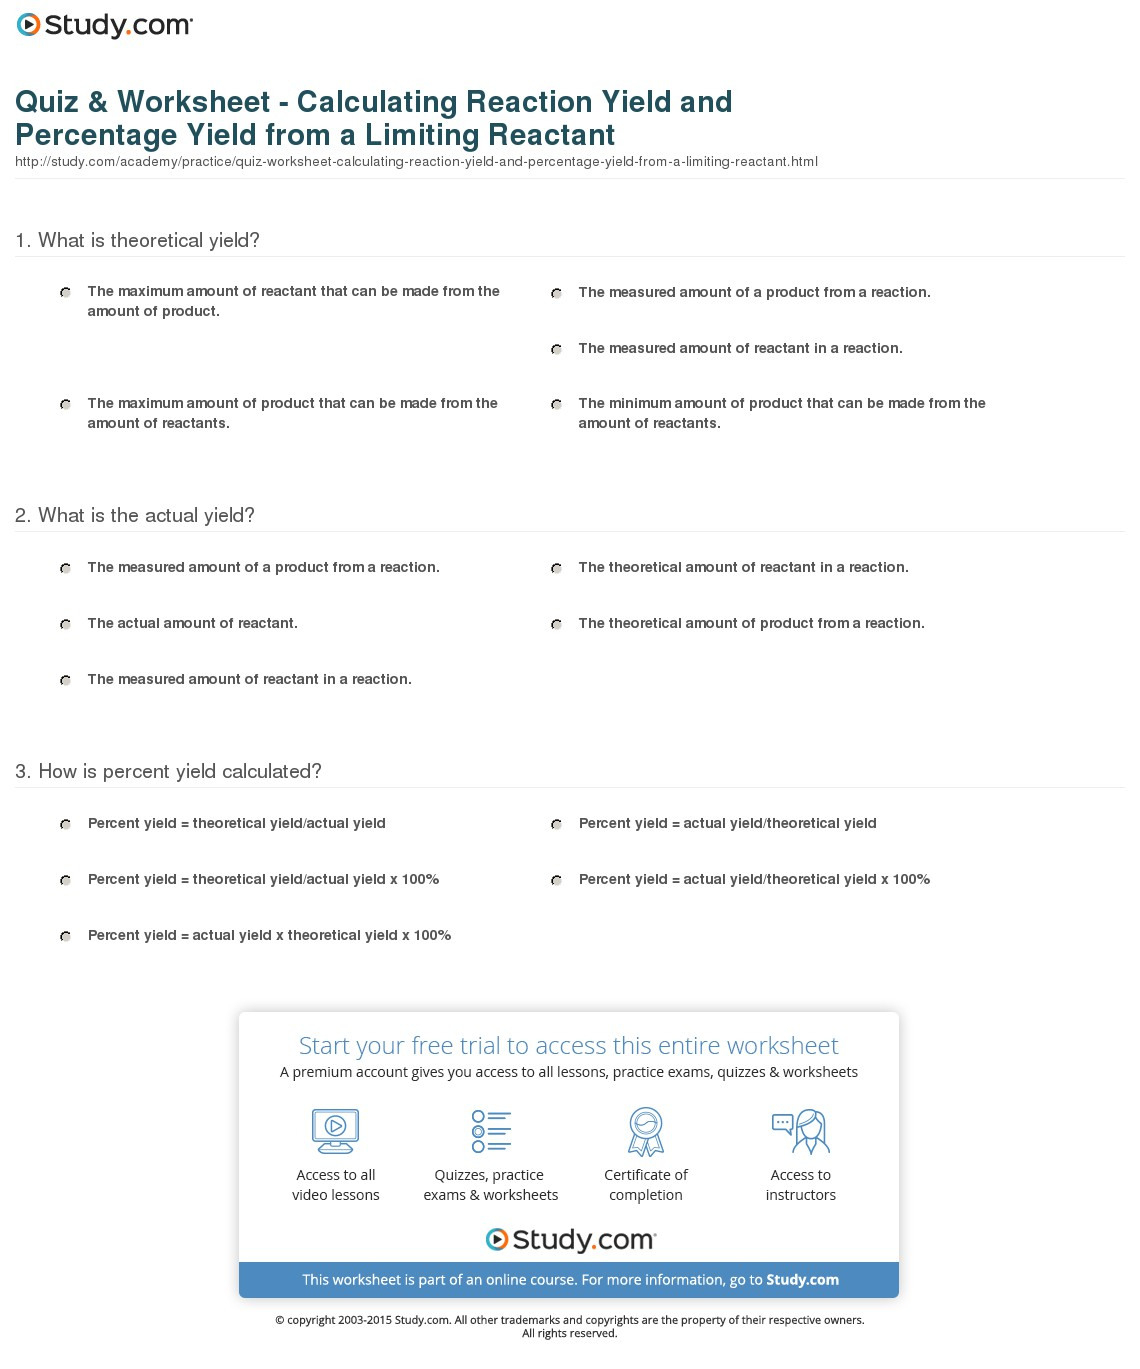 Quiz Worksheet Calculating Reaction Yield And Percentage